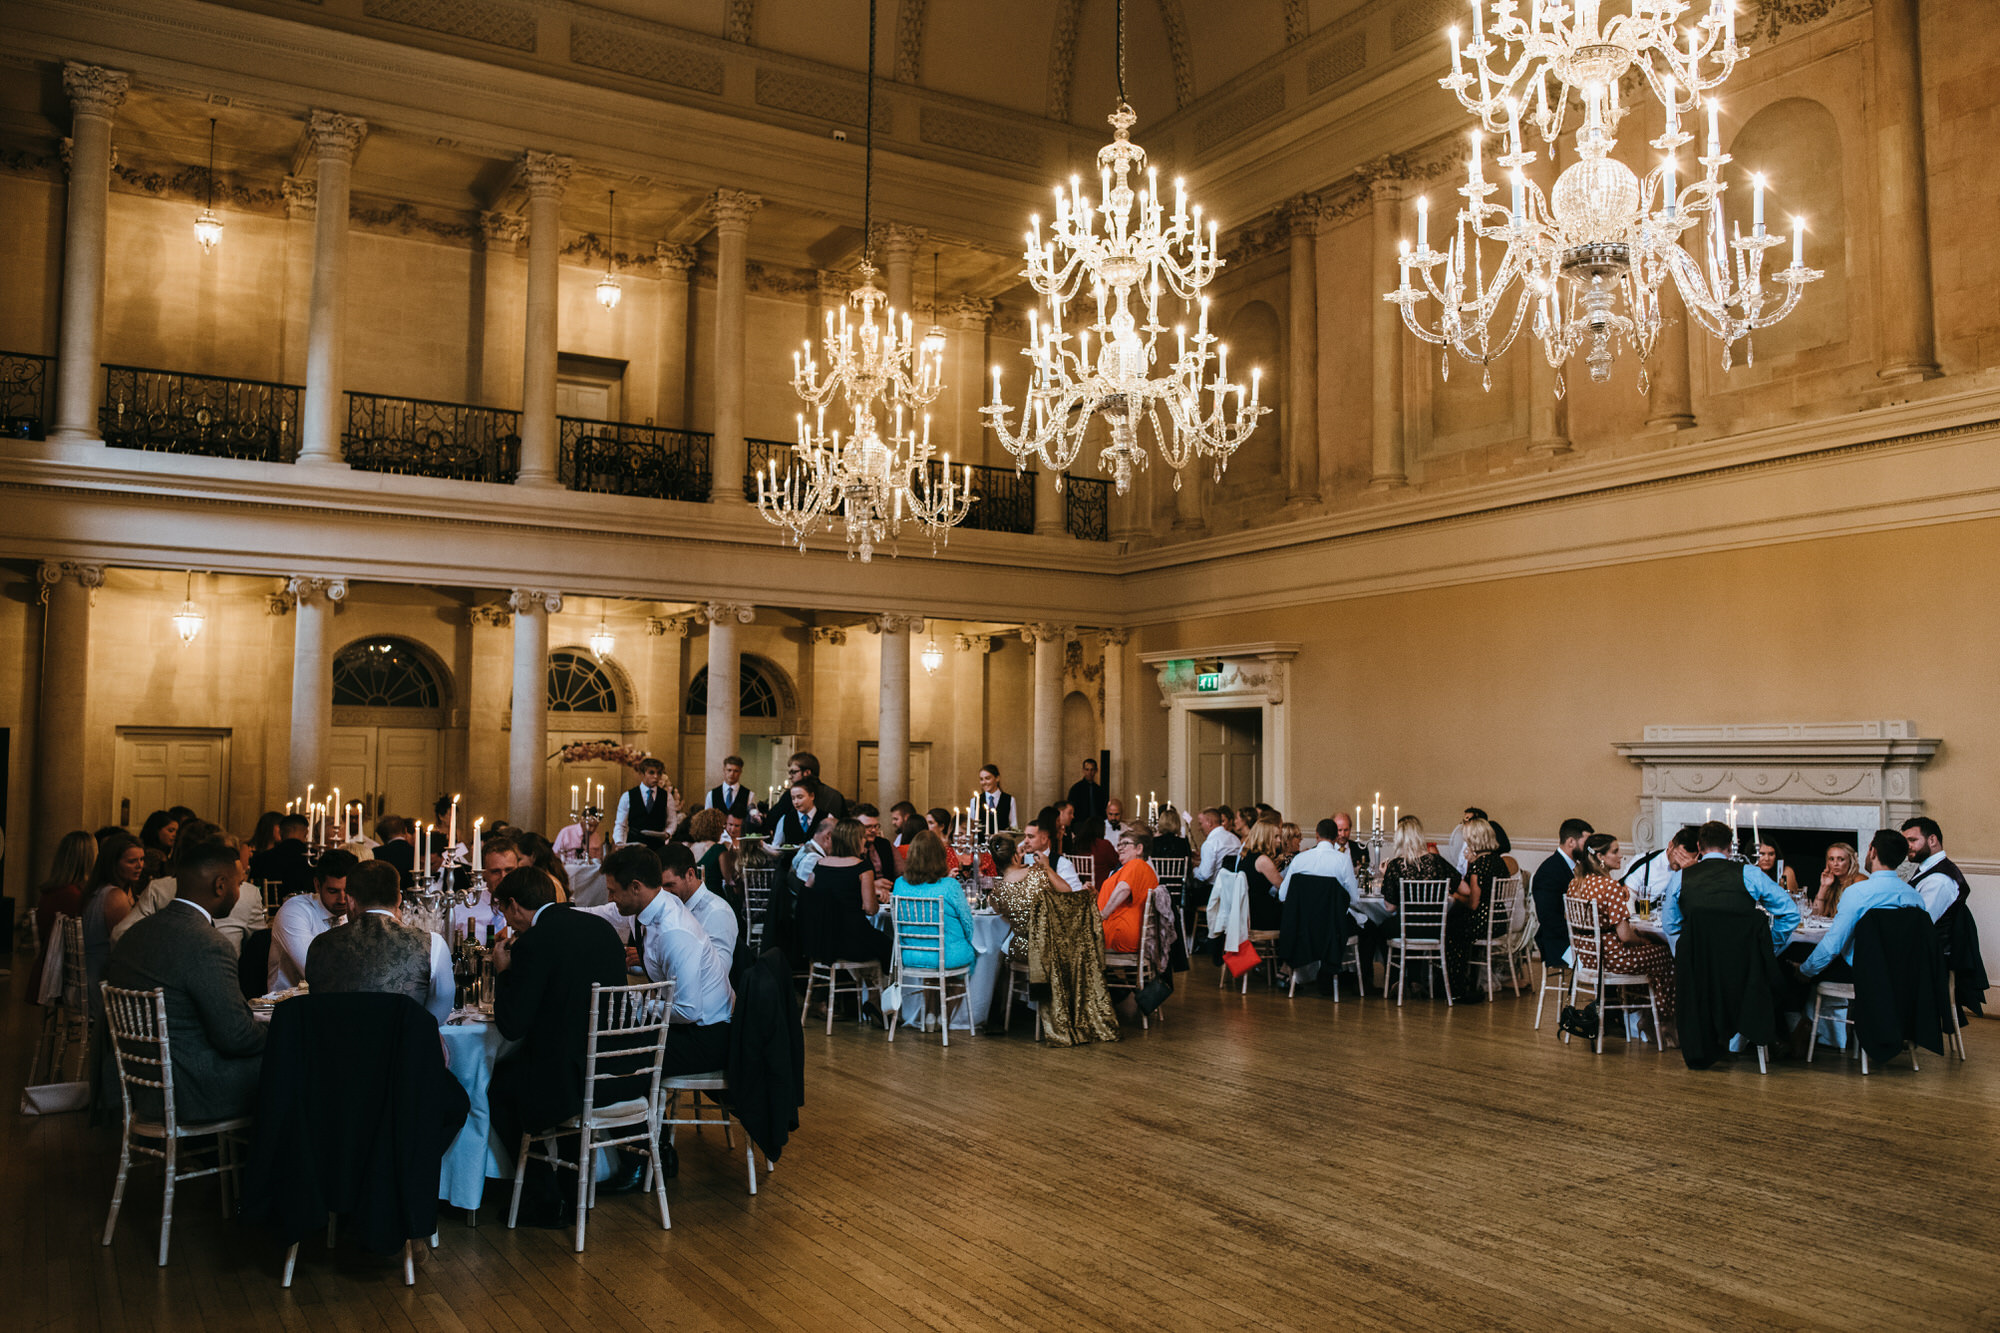 Assembly rooms bath wedding venue simon biffen photography 8